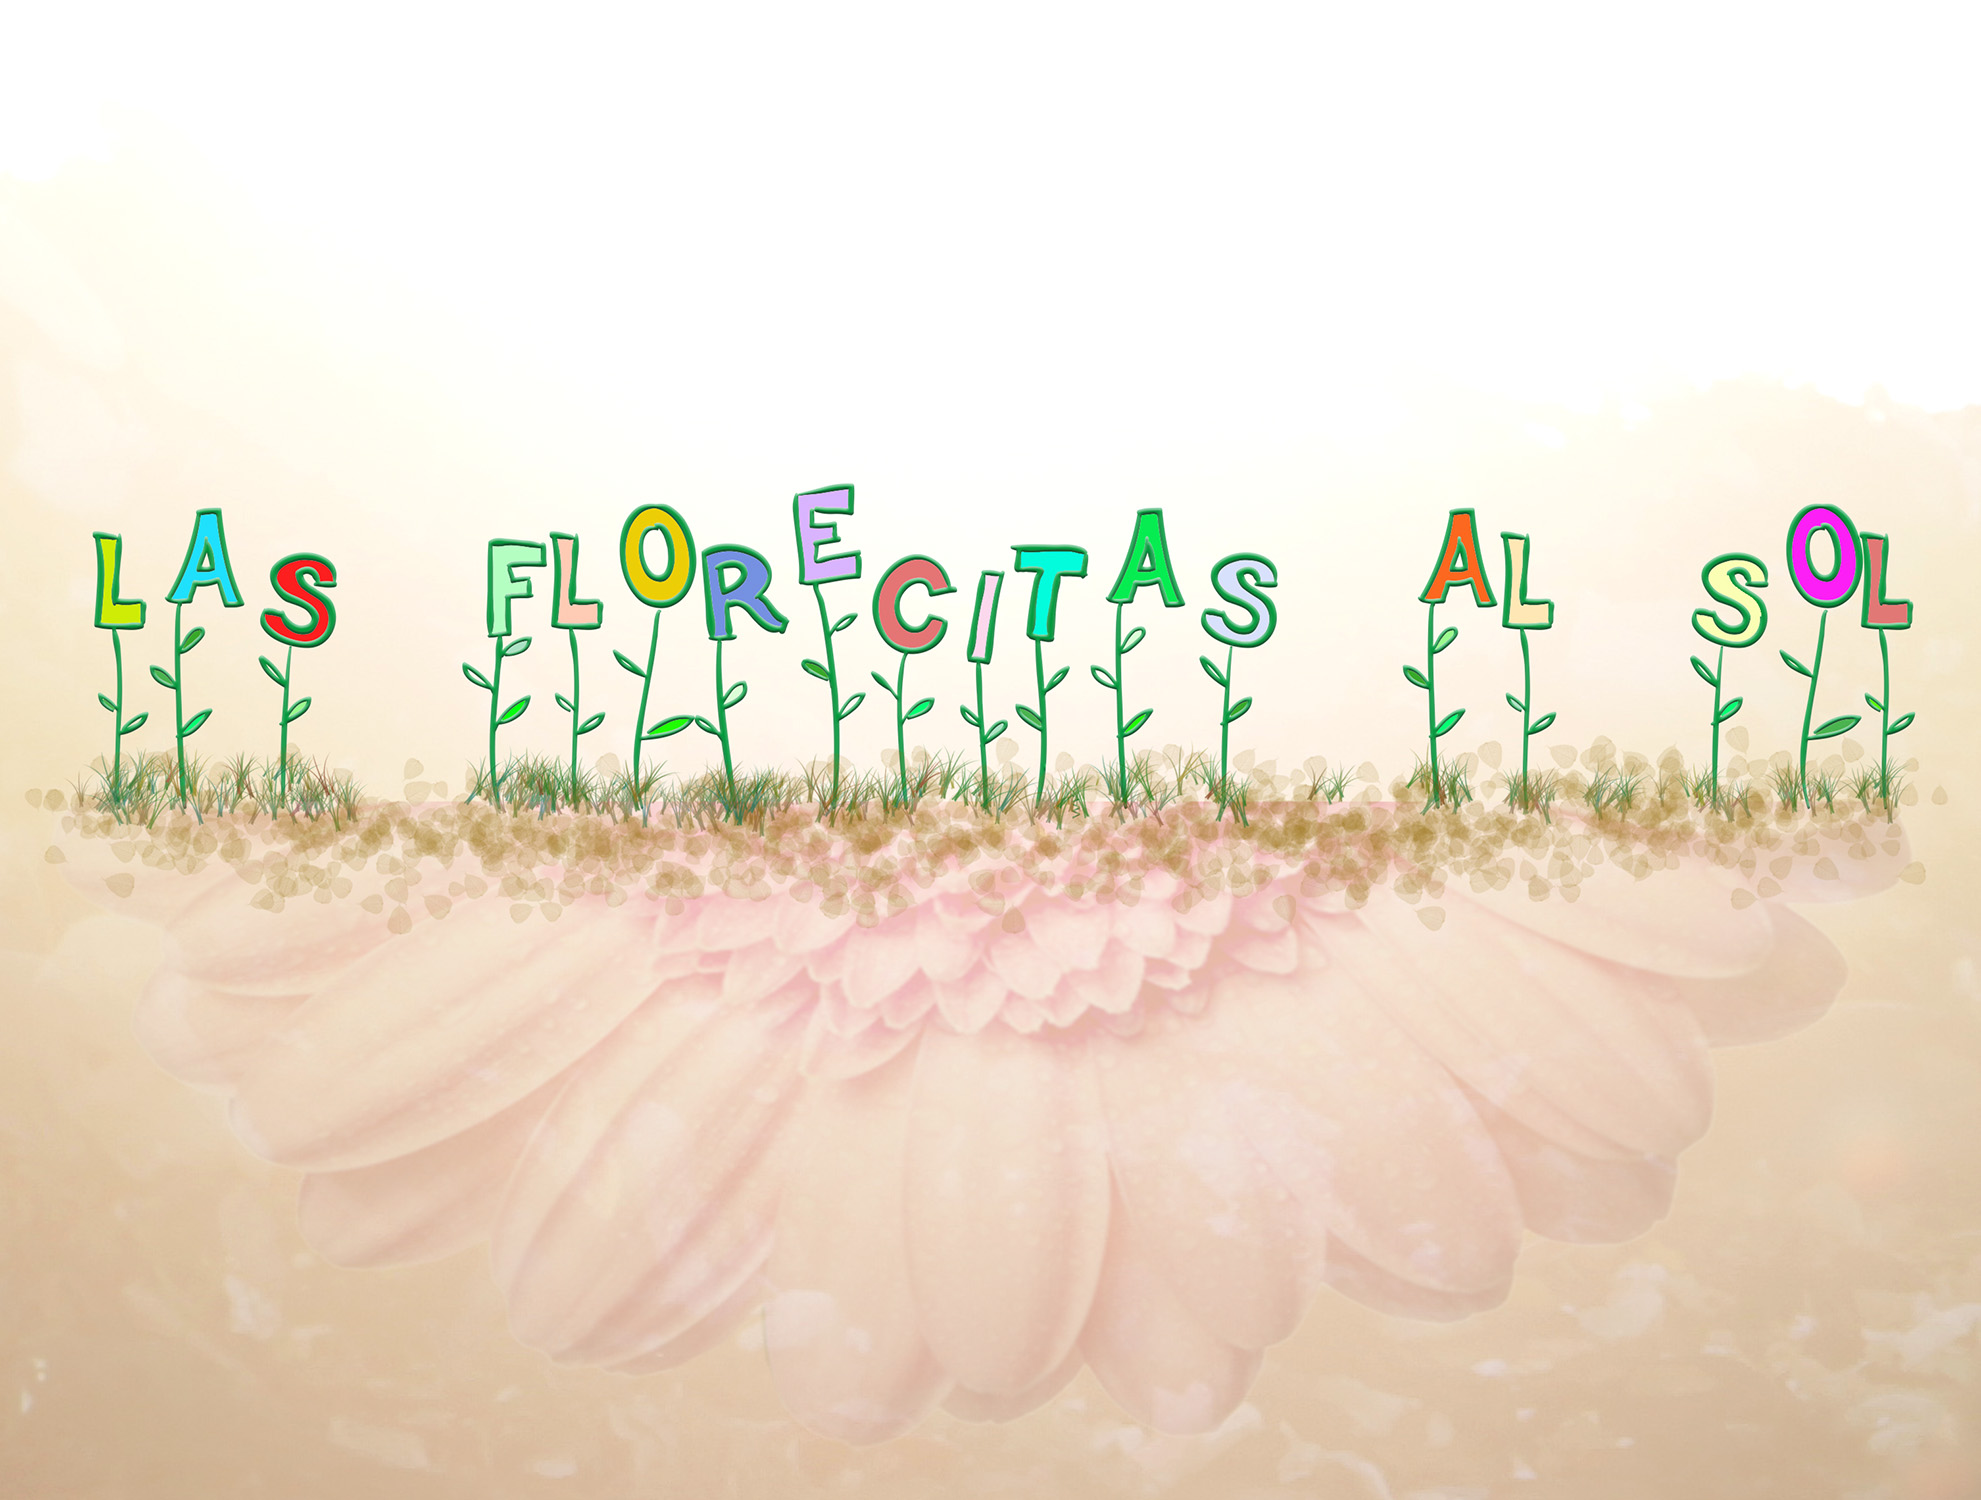 Las Florecitas al Sol is a Creative Acting Program. These small comedic, Novela-style skits are fun and educational.